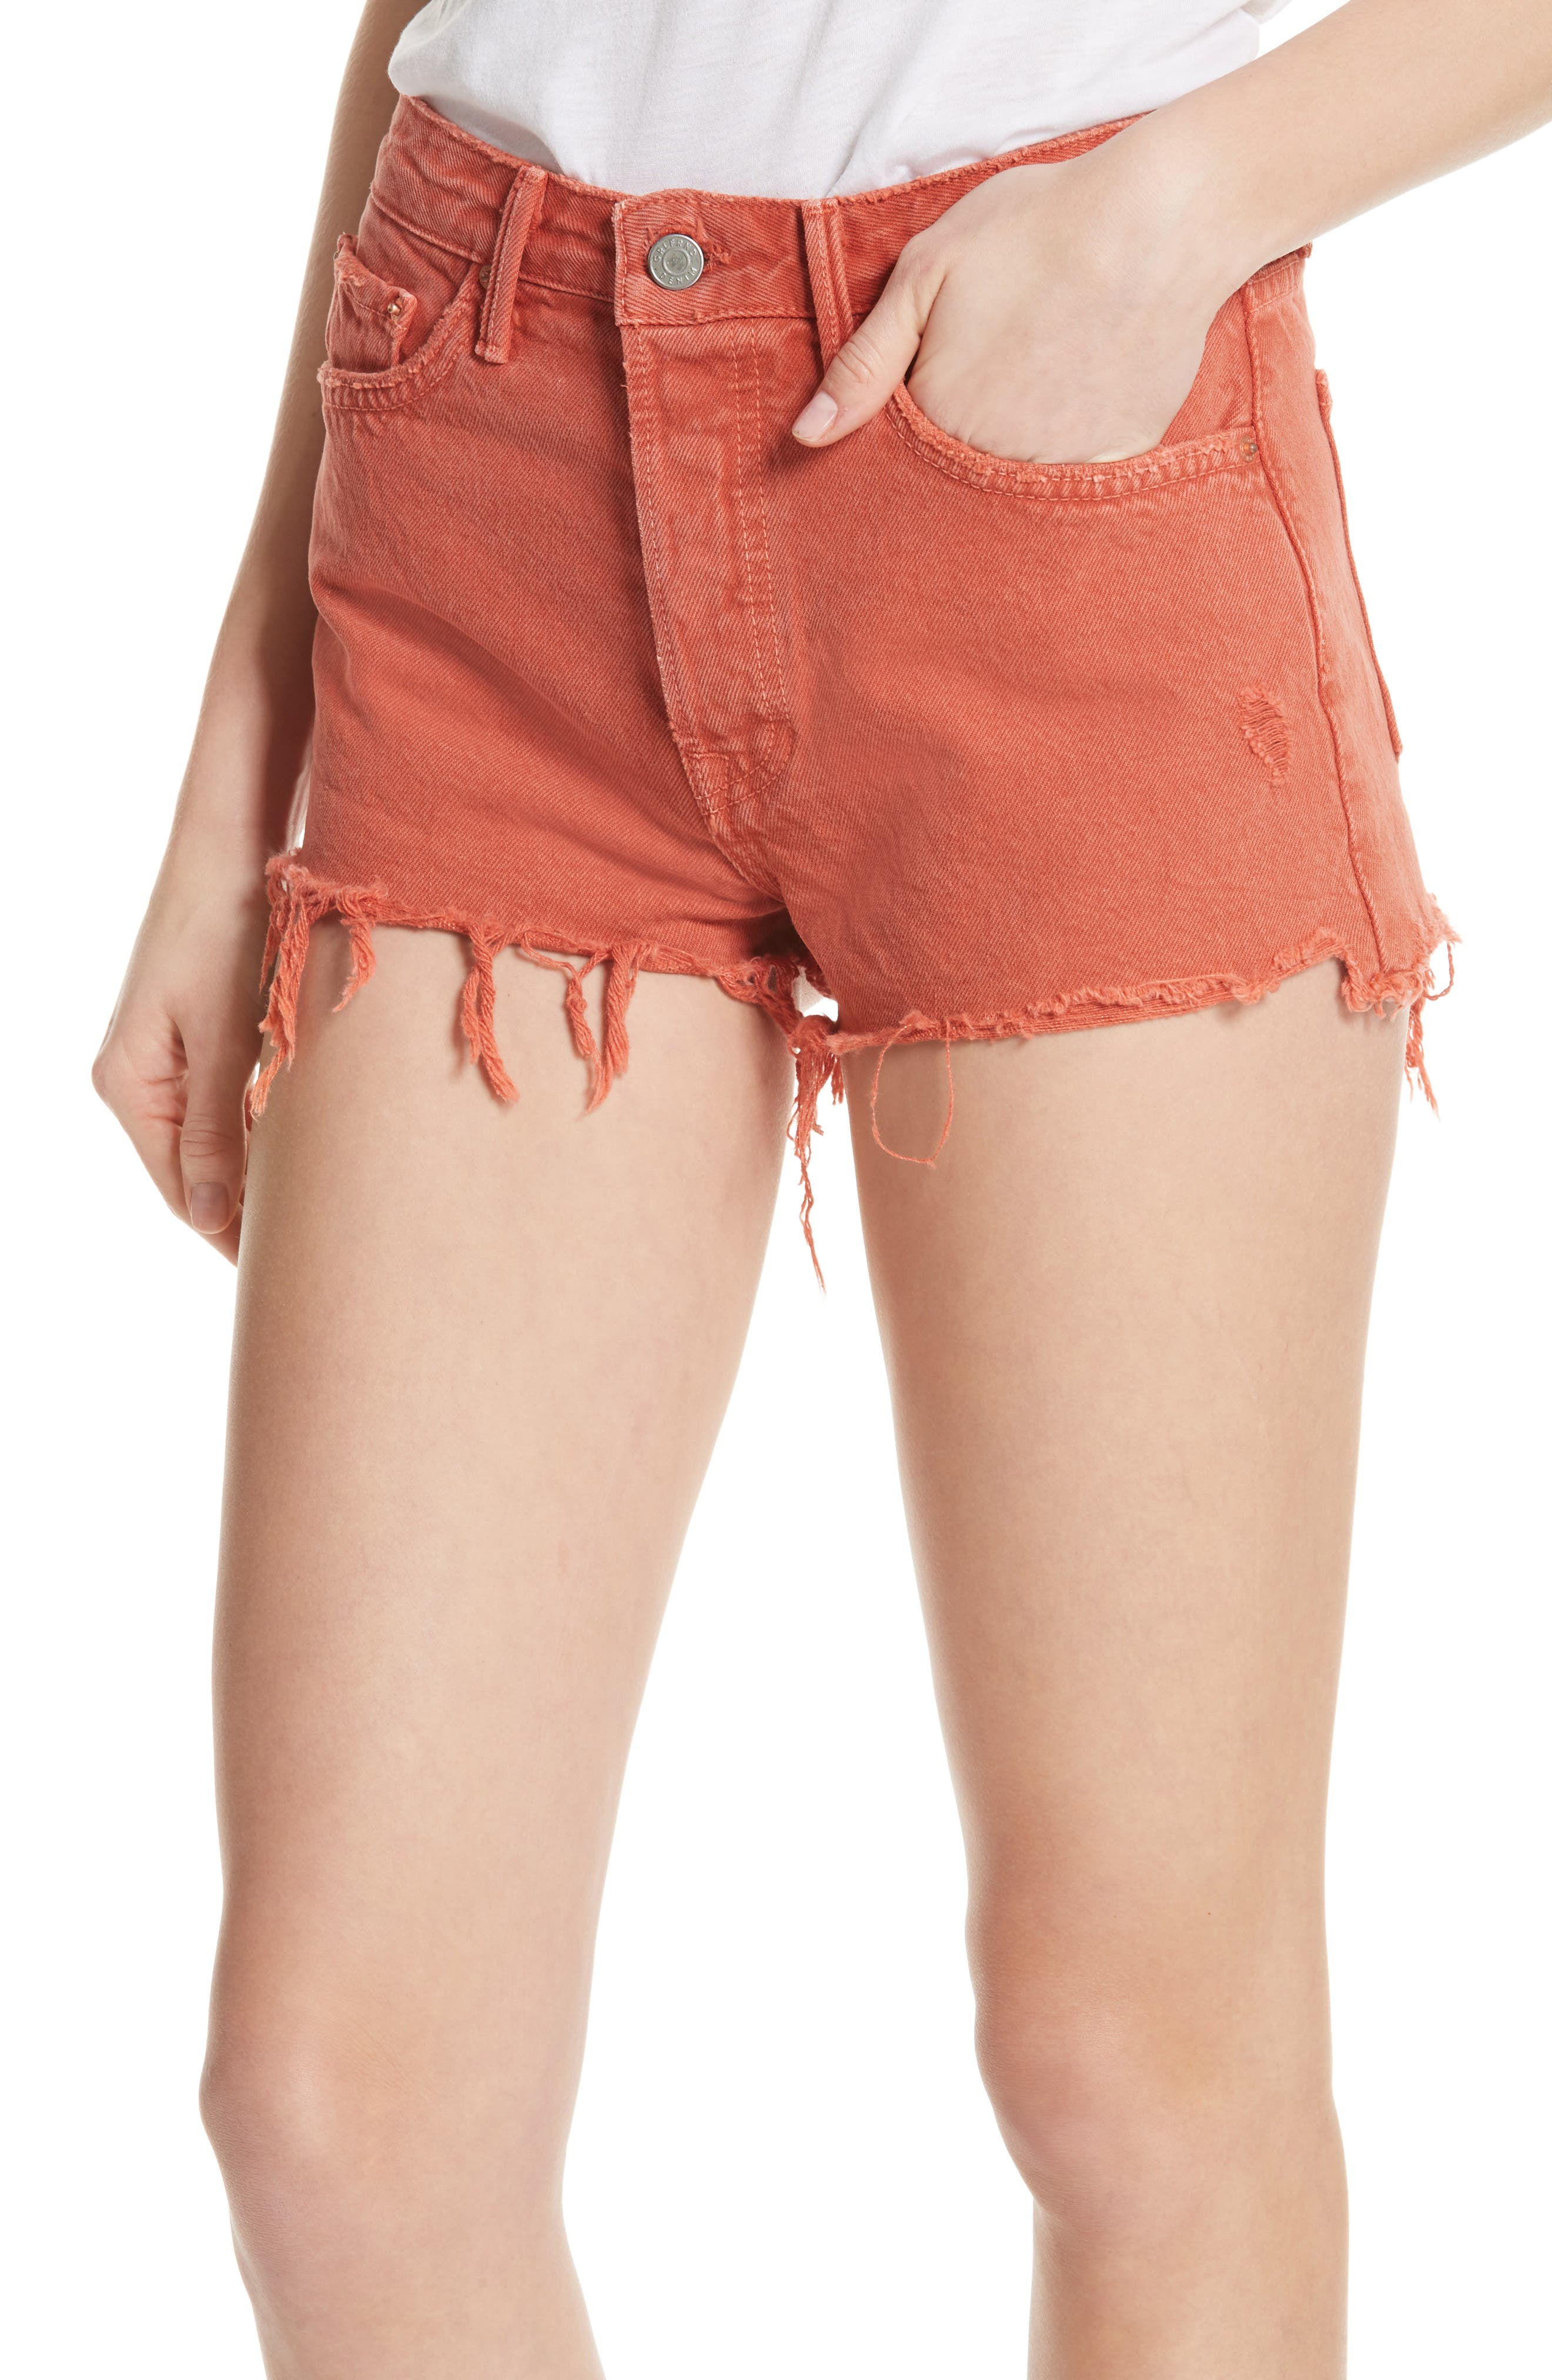 Cindy Rigid High Waist Denim Shorts,                             Alternate thumbnail 4, color,                             Spice Market